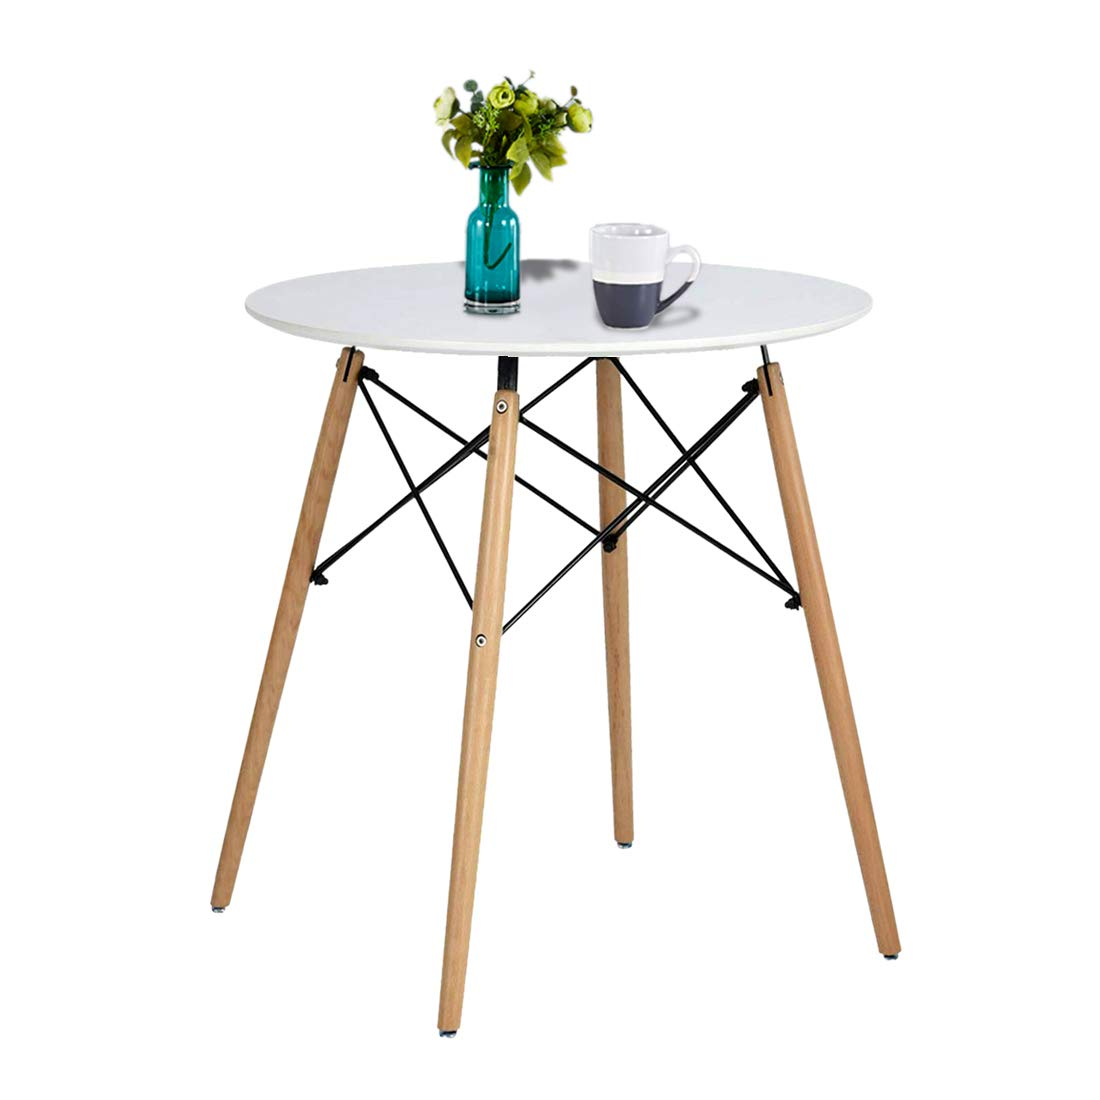 Artwell Kitchen Dining Table Eames Style White Round Coffee Table Mid Century Modern Leisure Wood Tea Table Office Conference Pedestal Desk (Small Size-Diameter 23.6'')